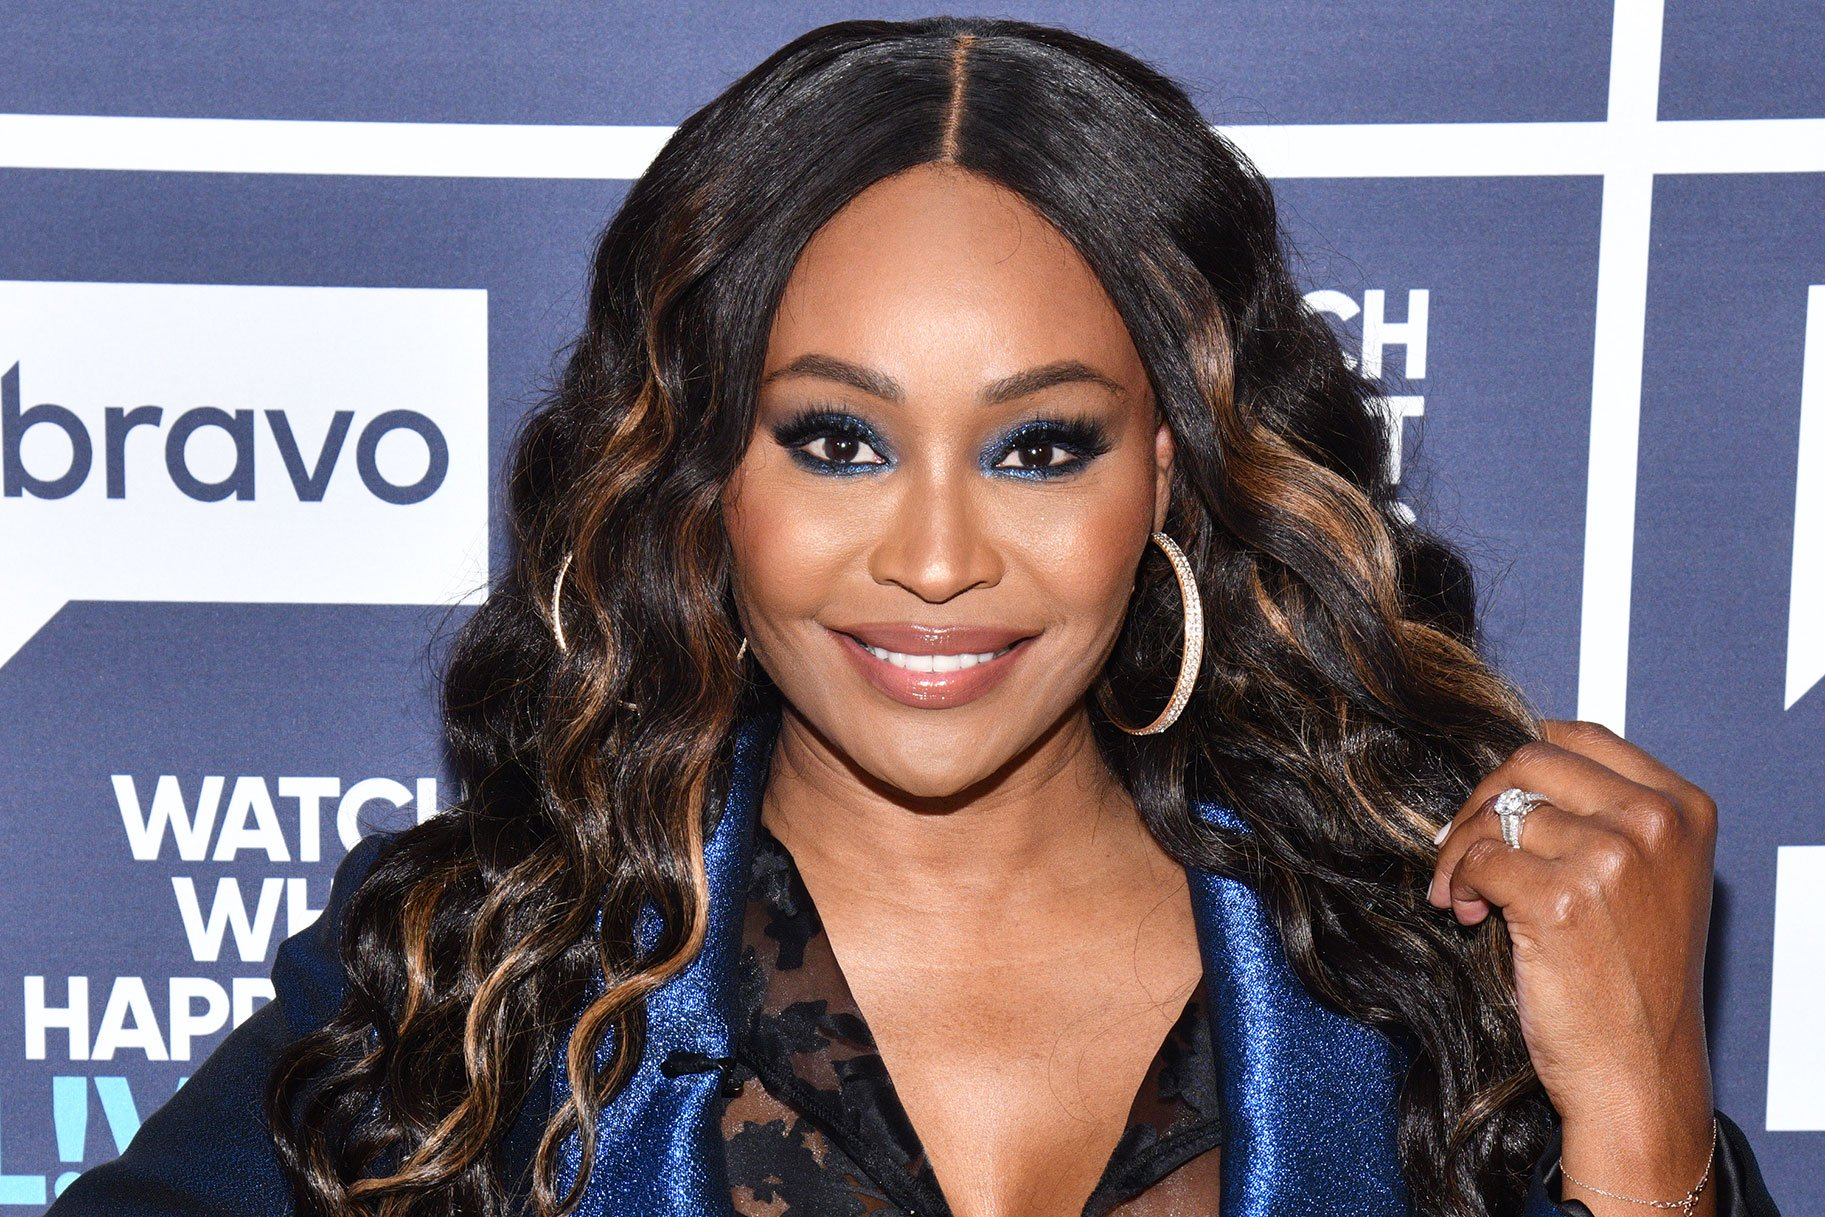 cynthia-bailey-impresses-fans-with-a-gorgeous-video-from-her-vacay